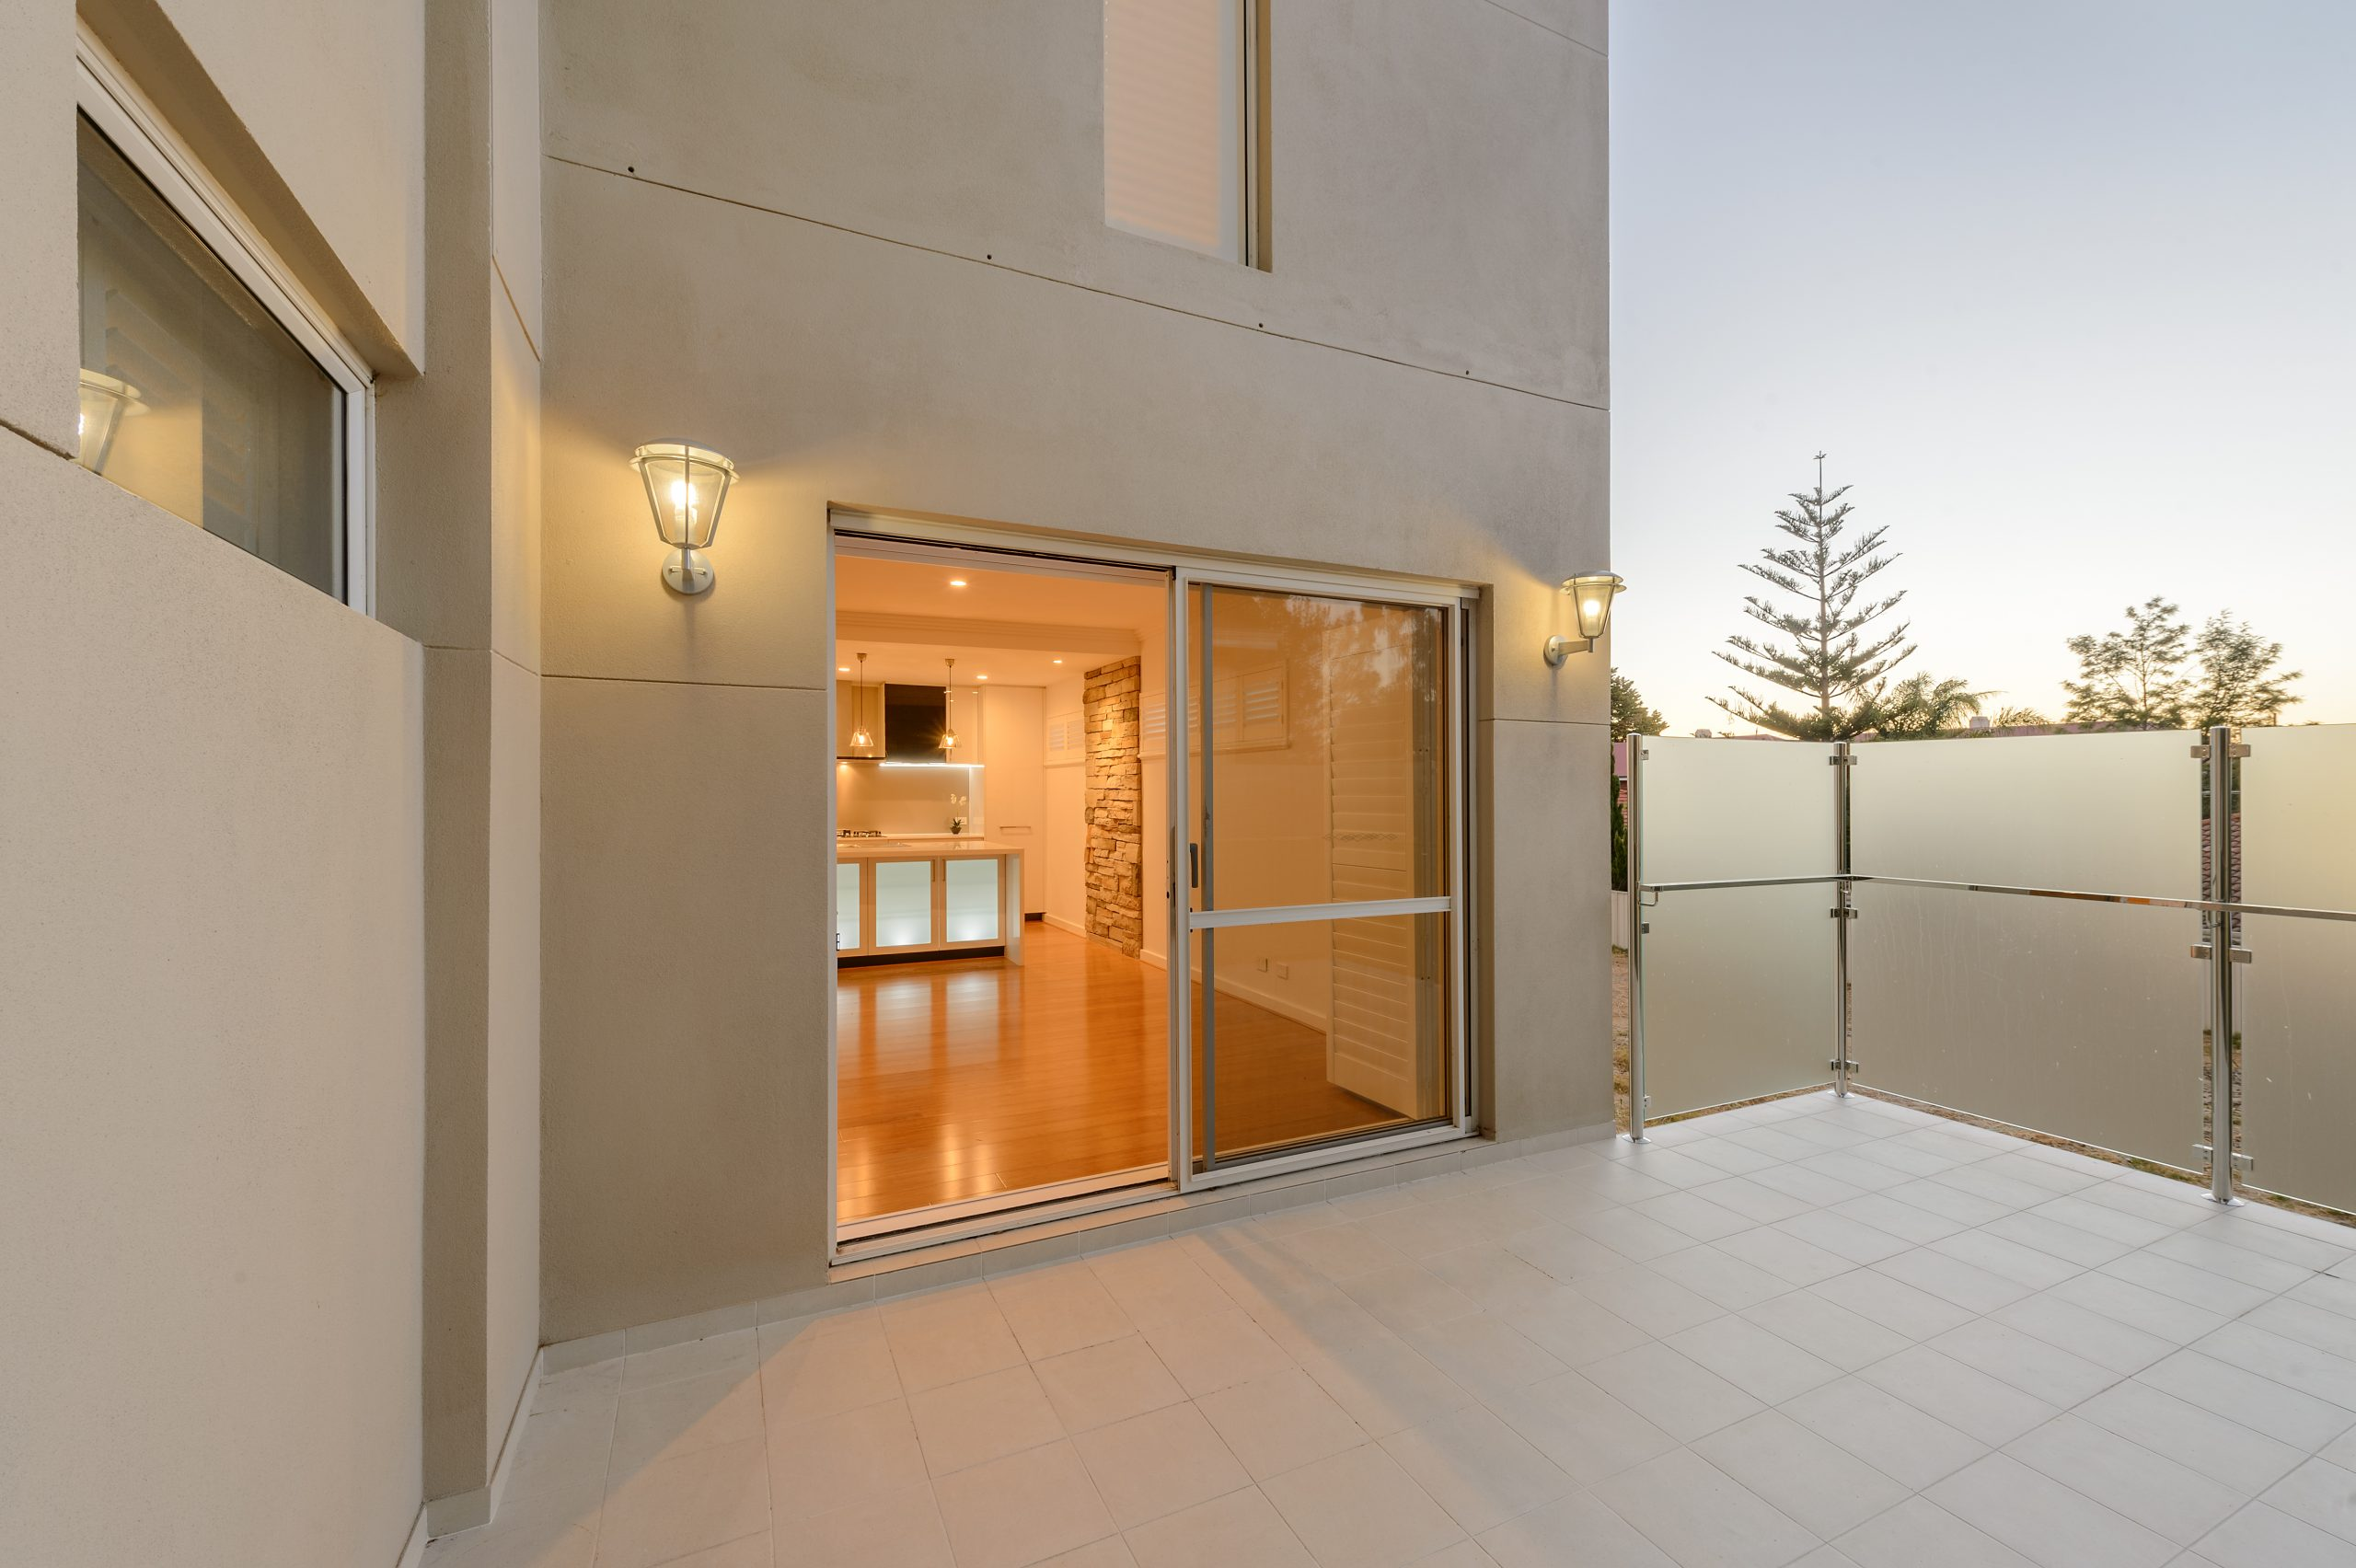 A view of a balcony with frosted glass railing system and and a kitchen